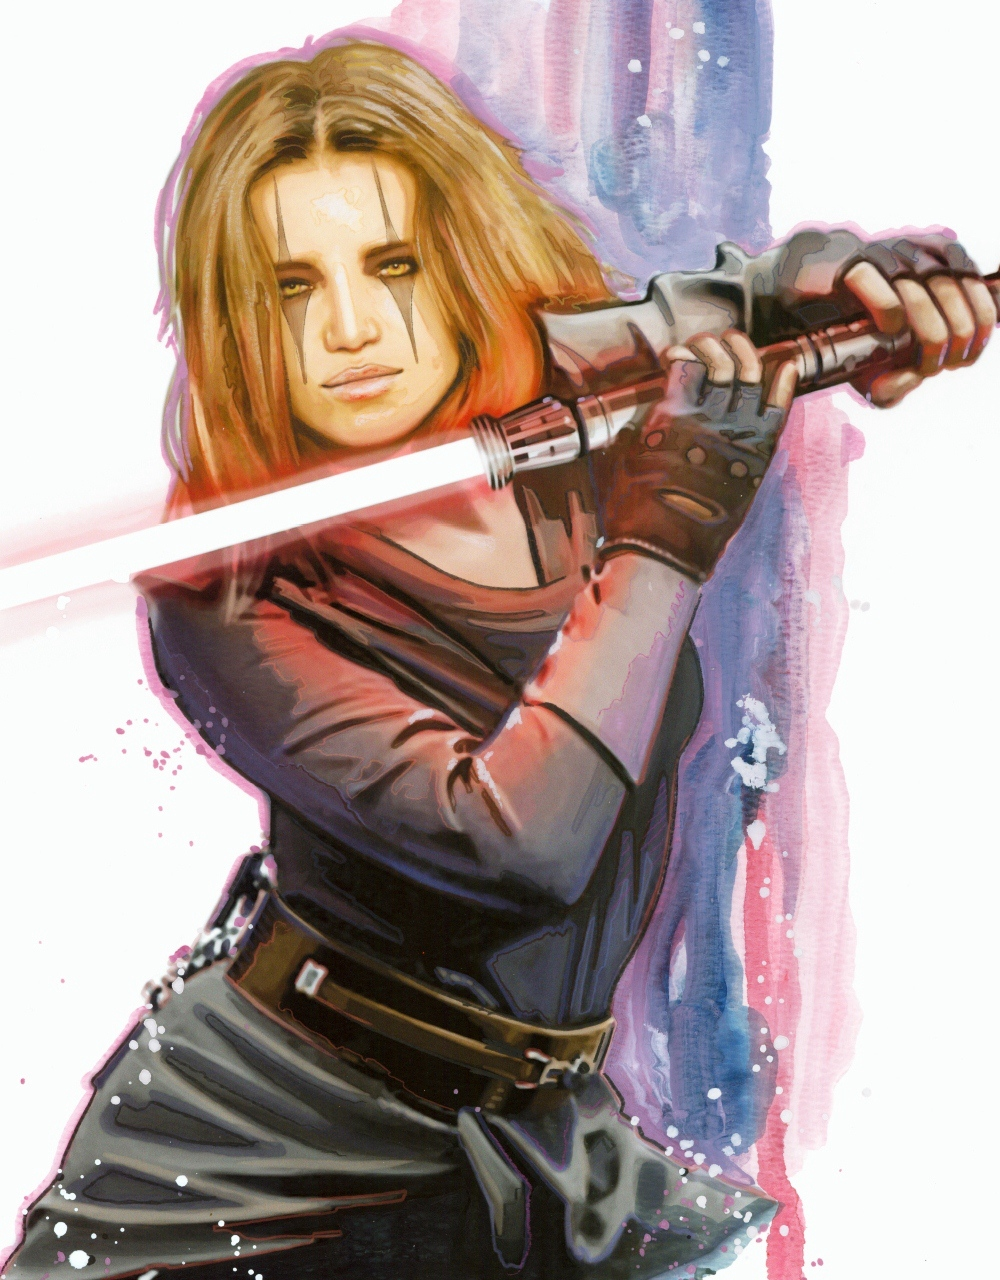 Darth Zannah/Leyendas